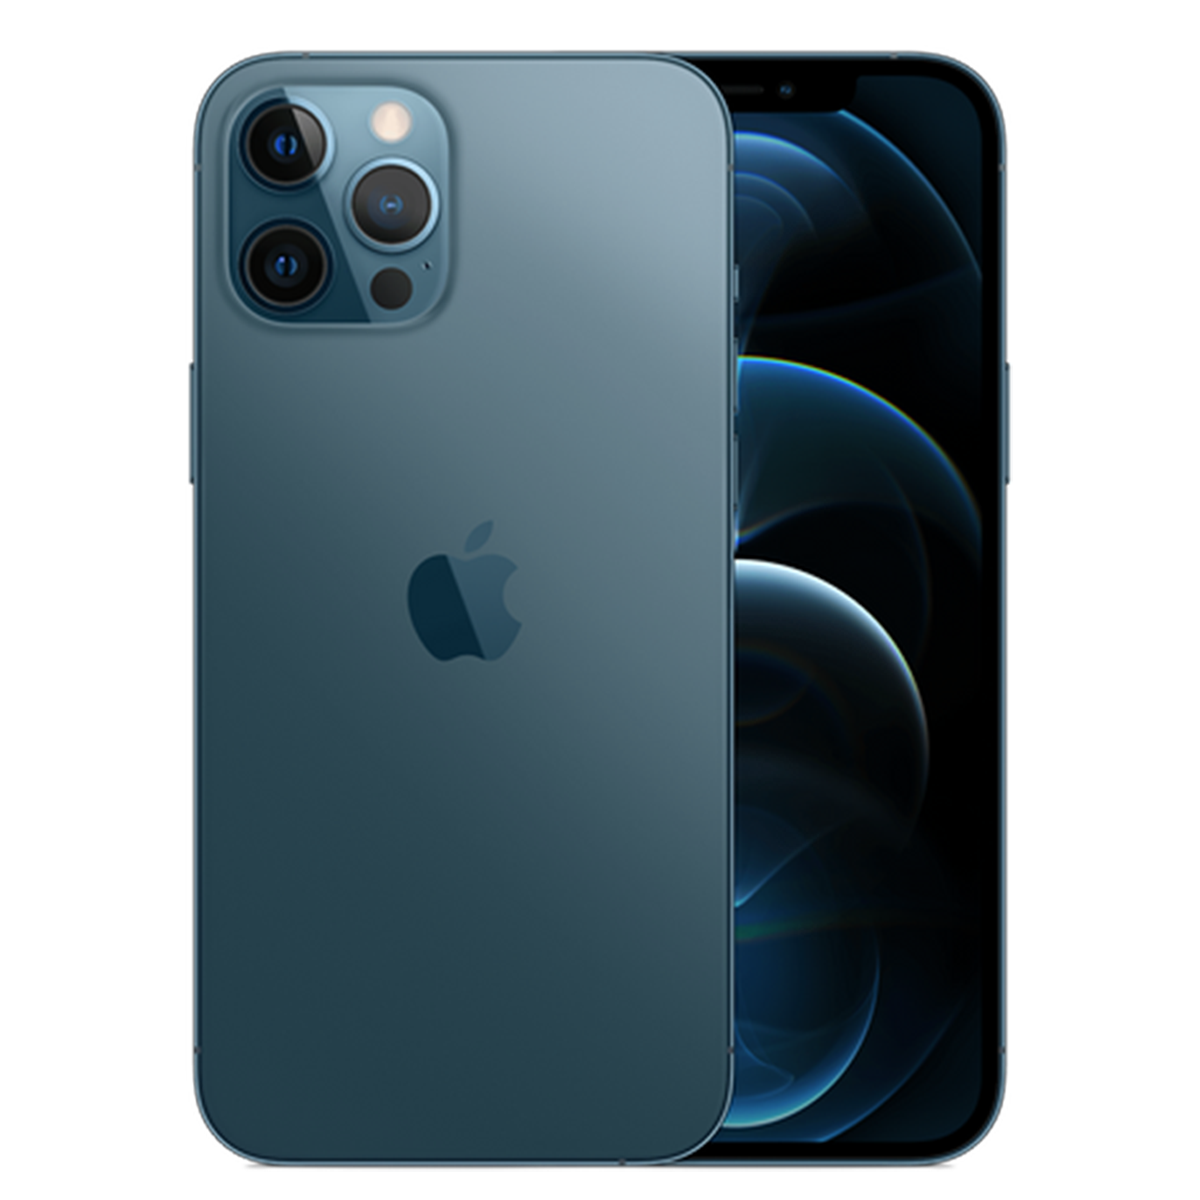 iPhone 12 Pro Max, Pacific Blue, 256GB (Official Stock)